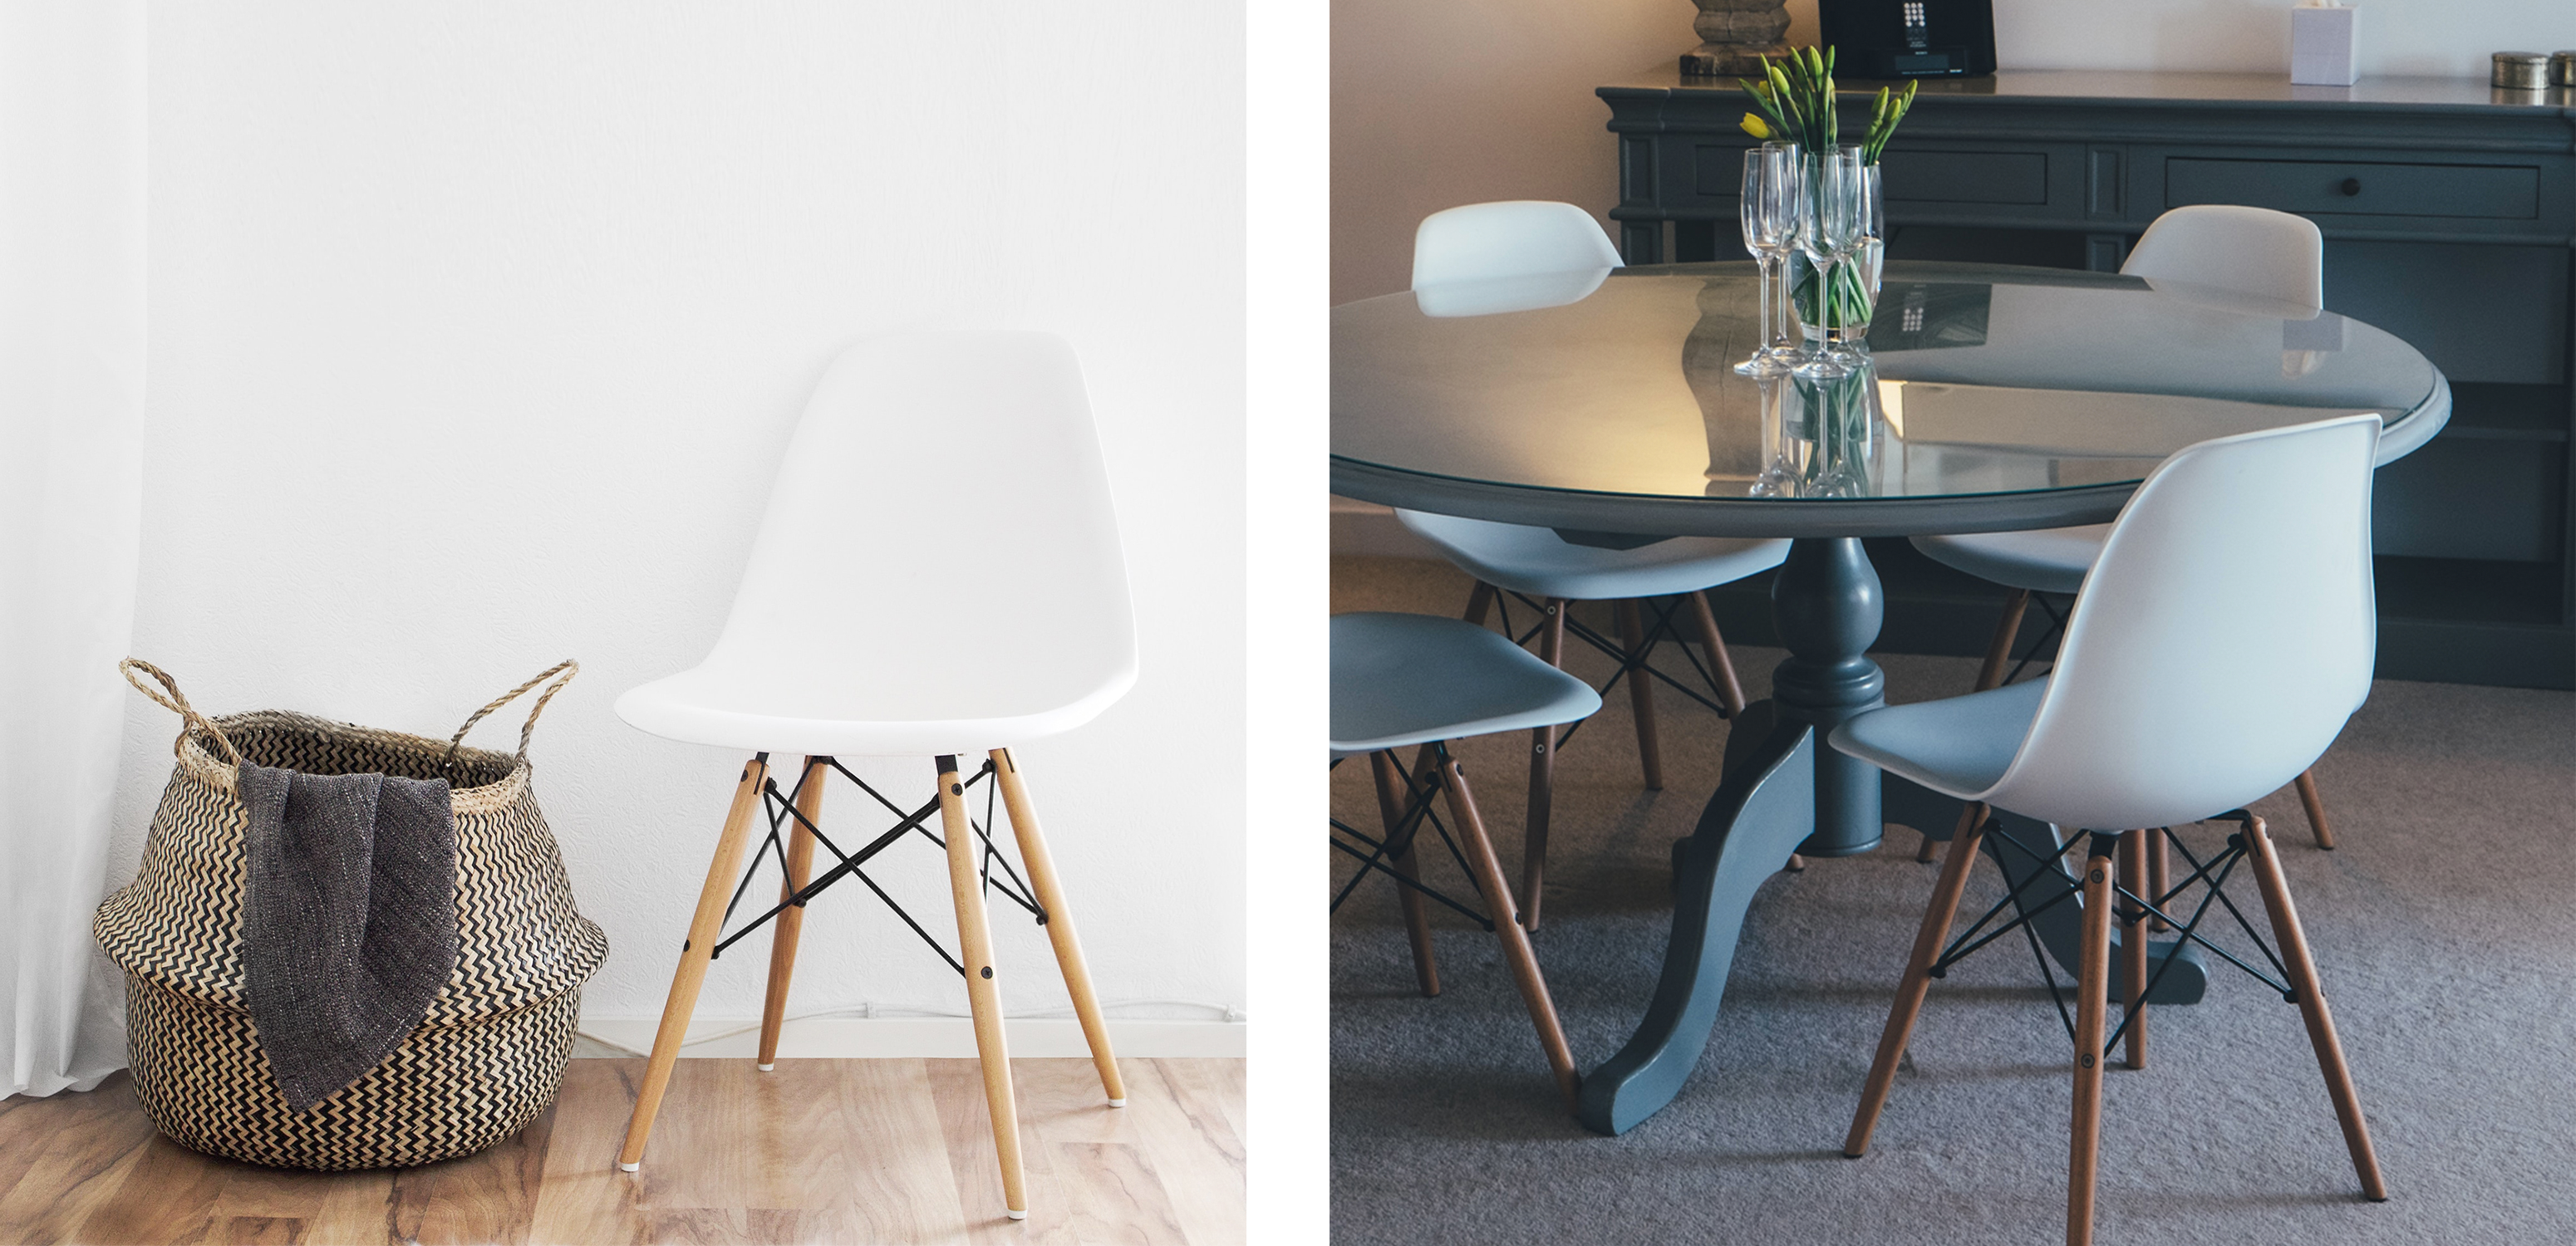 Eames DSW Chairs In White Used In Different Interiors